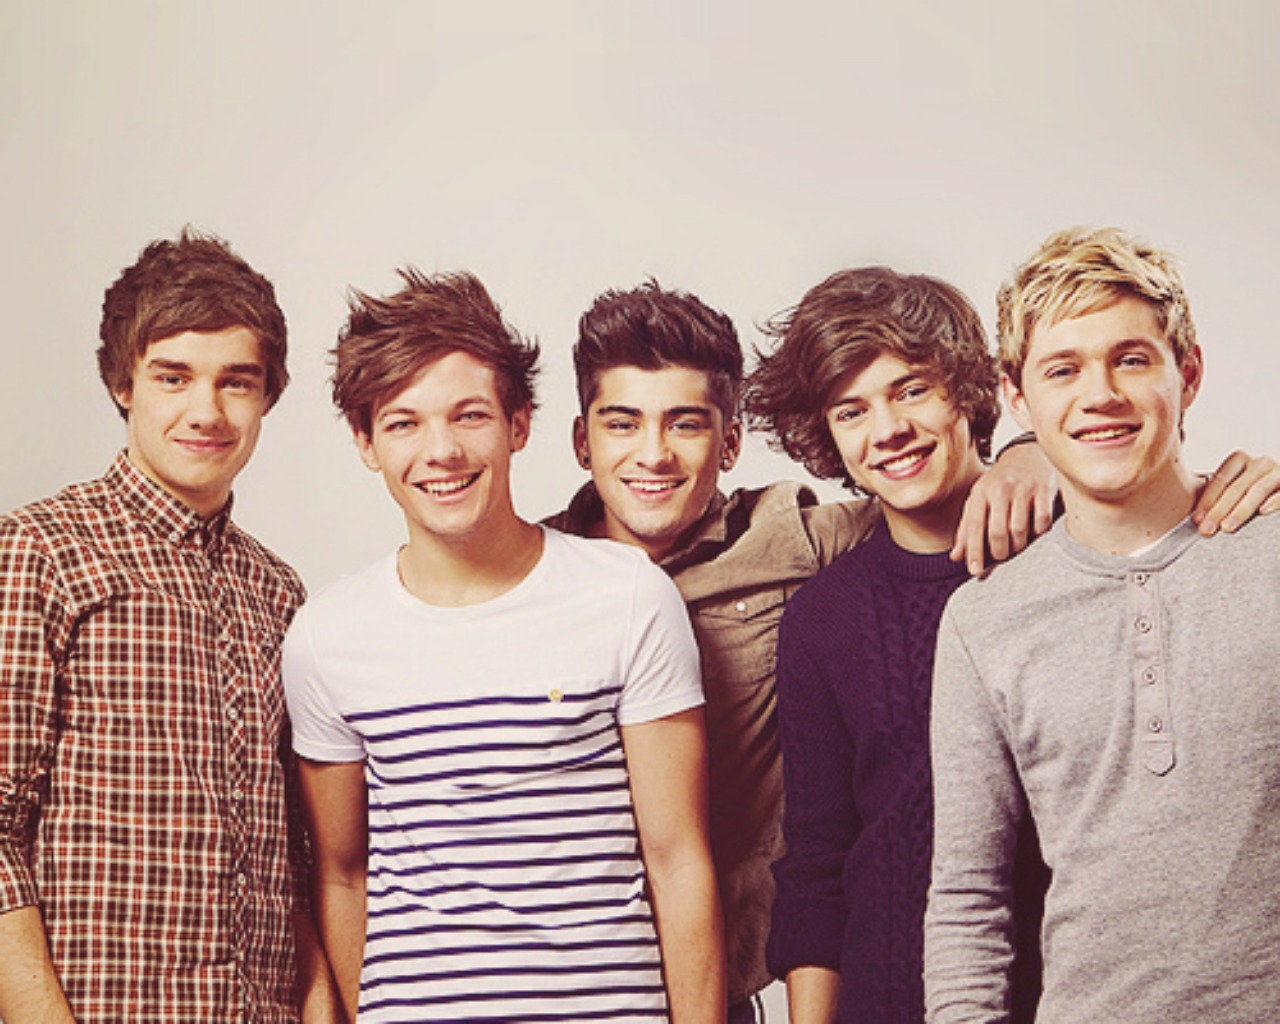 1d wallpapers one direction wallpaper 31465479 fanpop